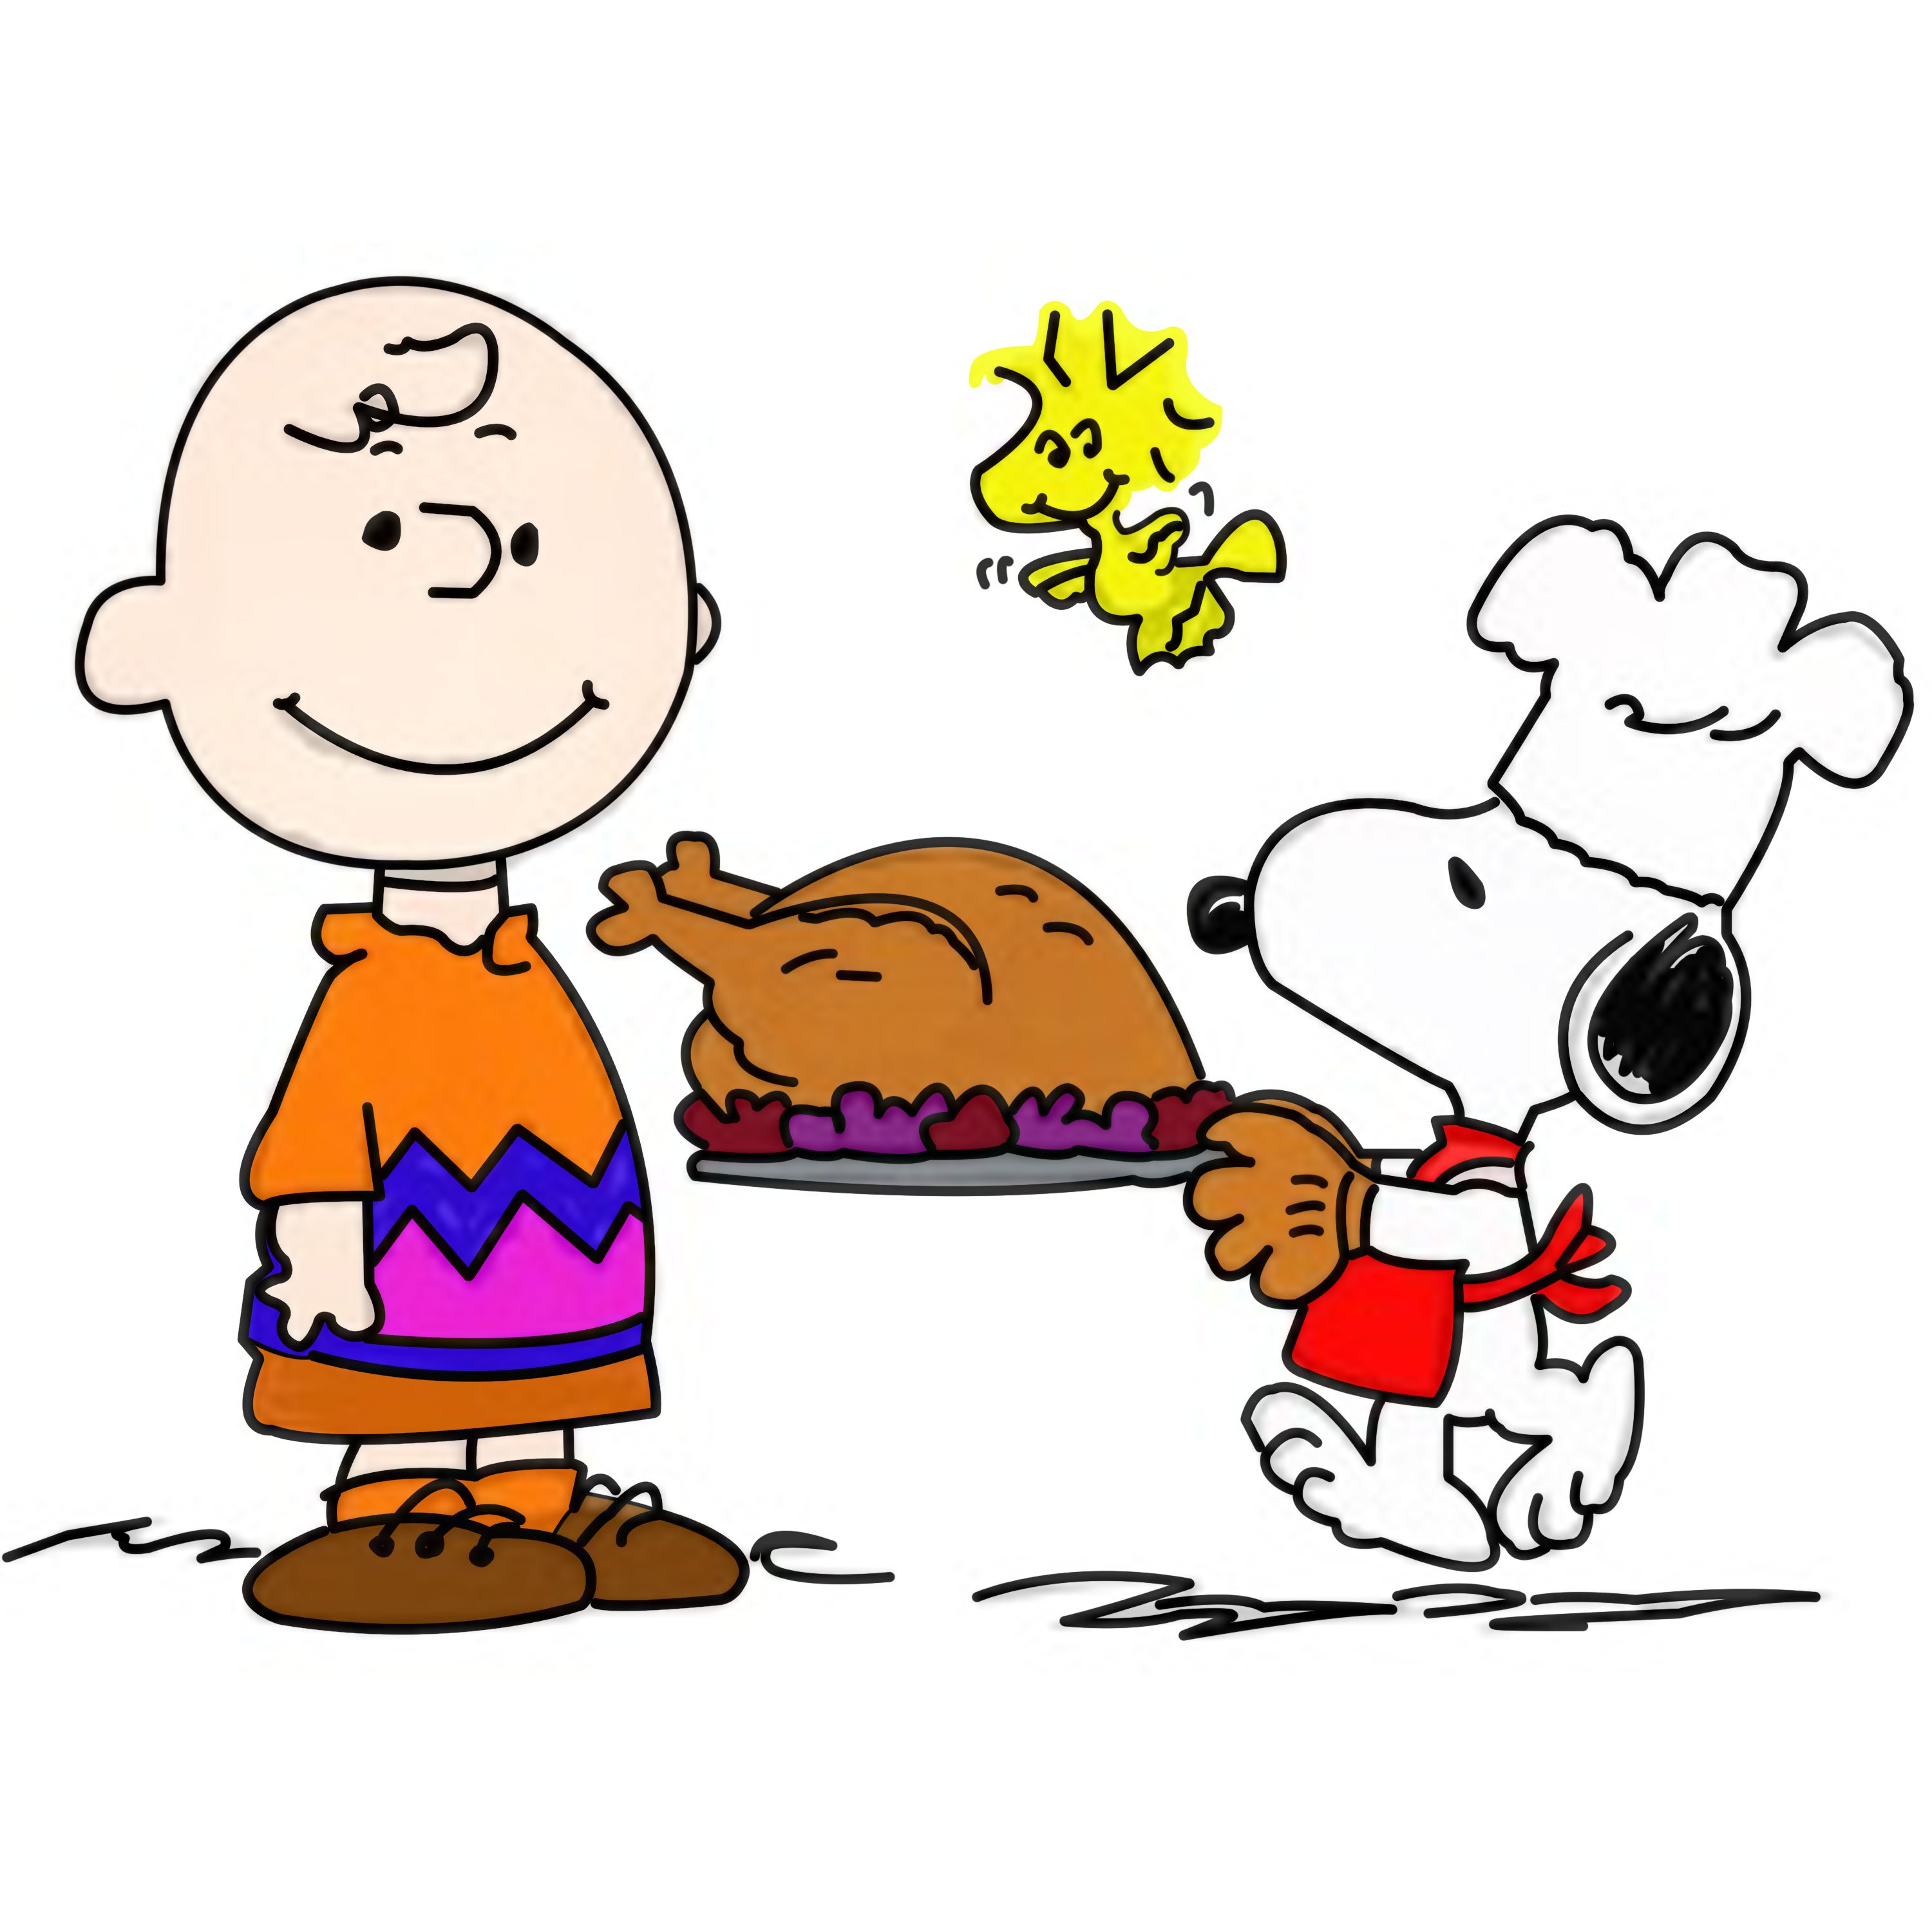 Funny Thanks Giving Jokes Kid - Snoopy Thanksgiving Clip Art